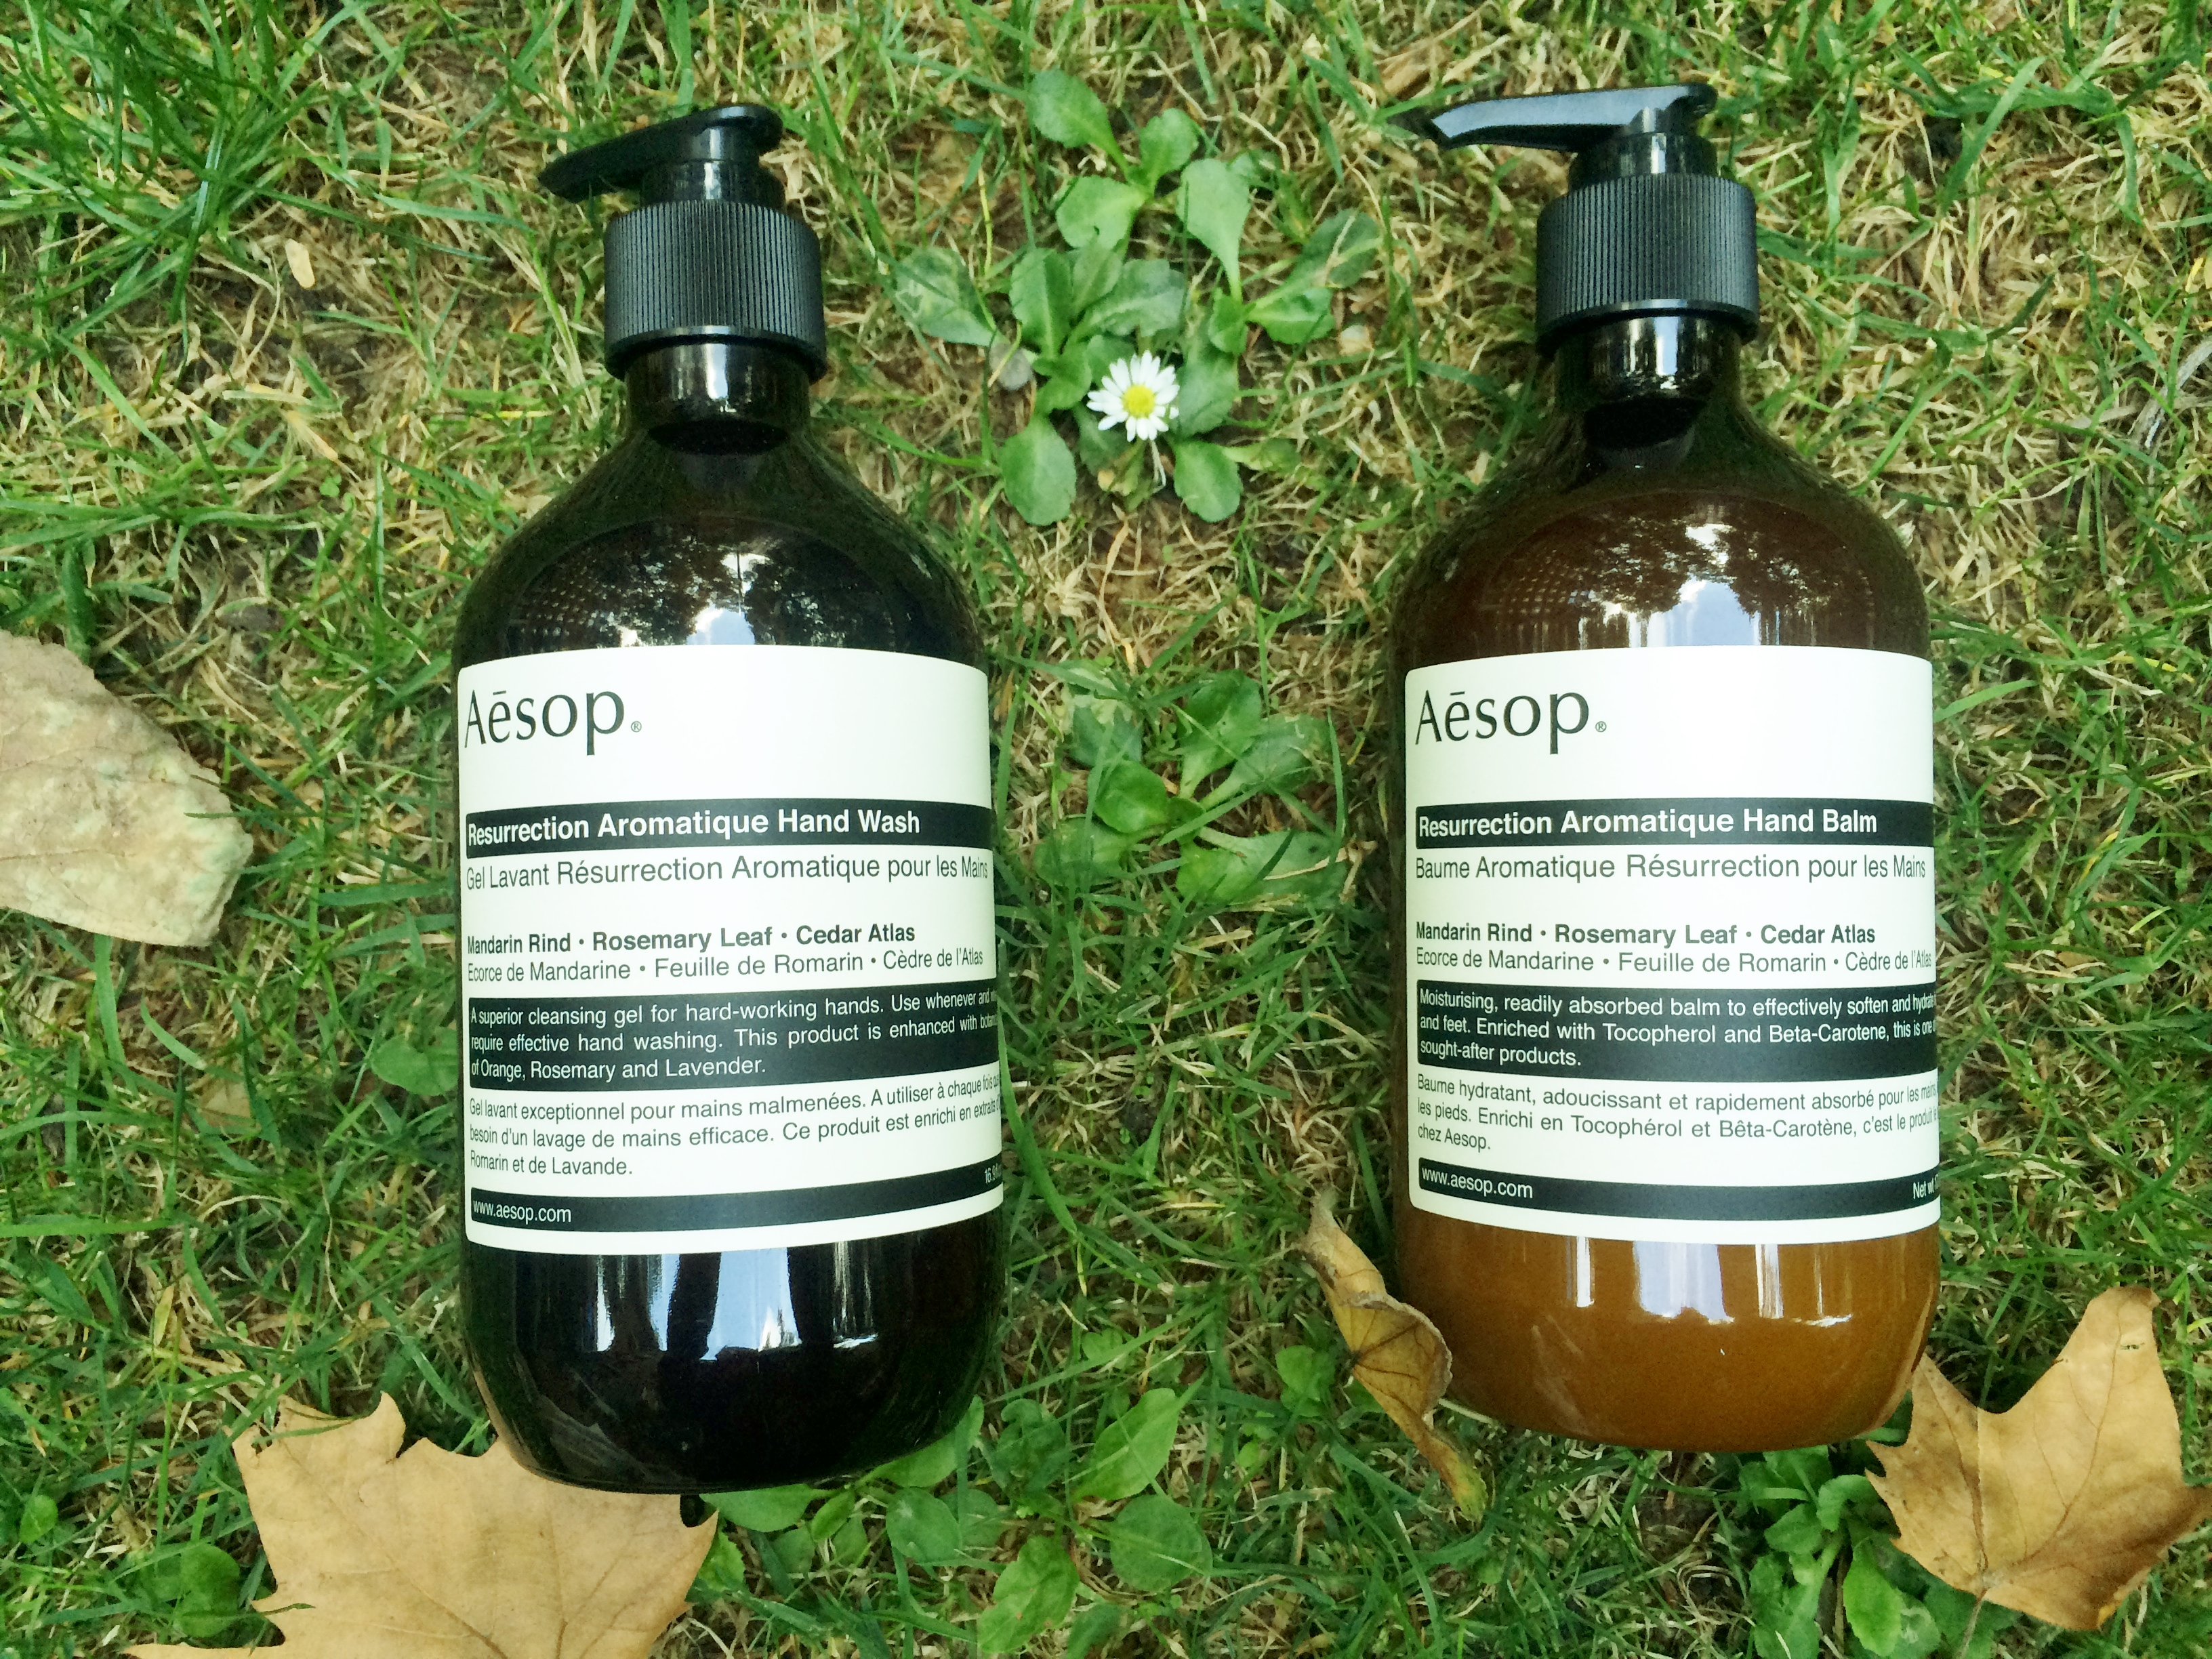 aesop review